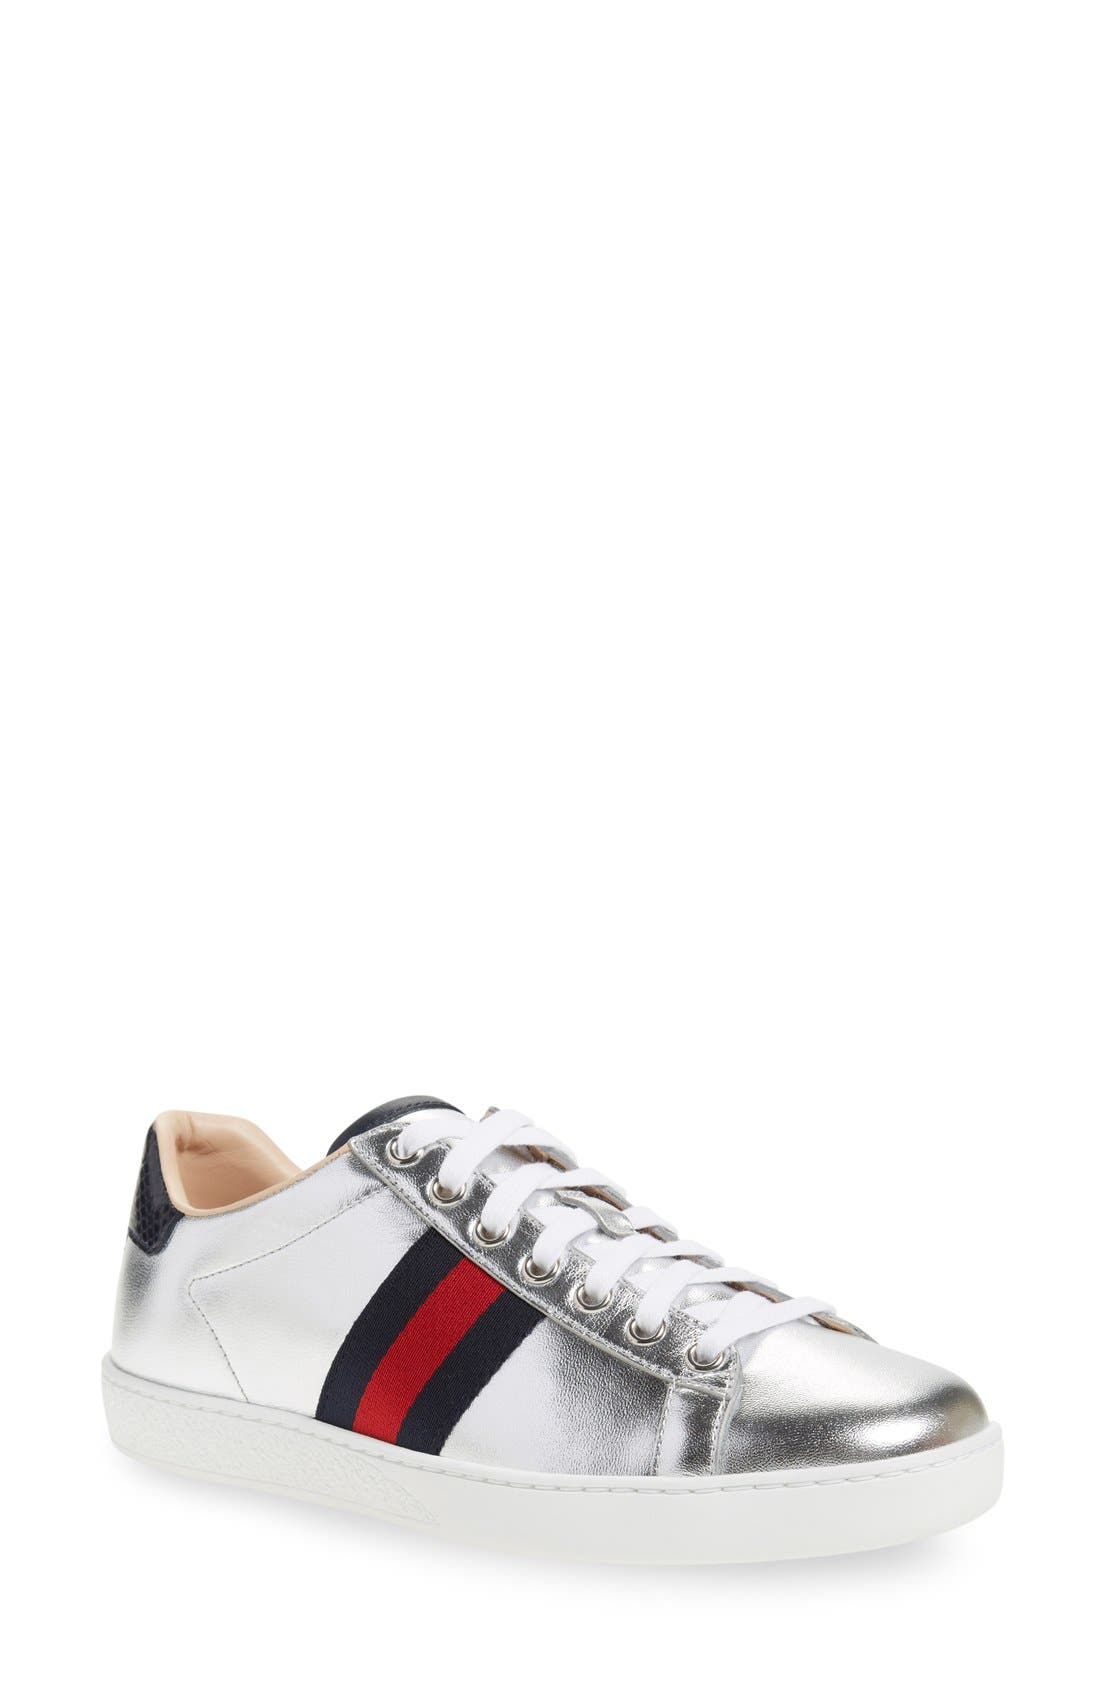 GUCCI,                             'New Ace' Metallic Low Top Sneaker,                             Main thumbnail 1, color,                             040